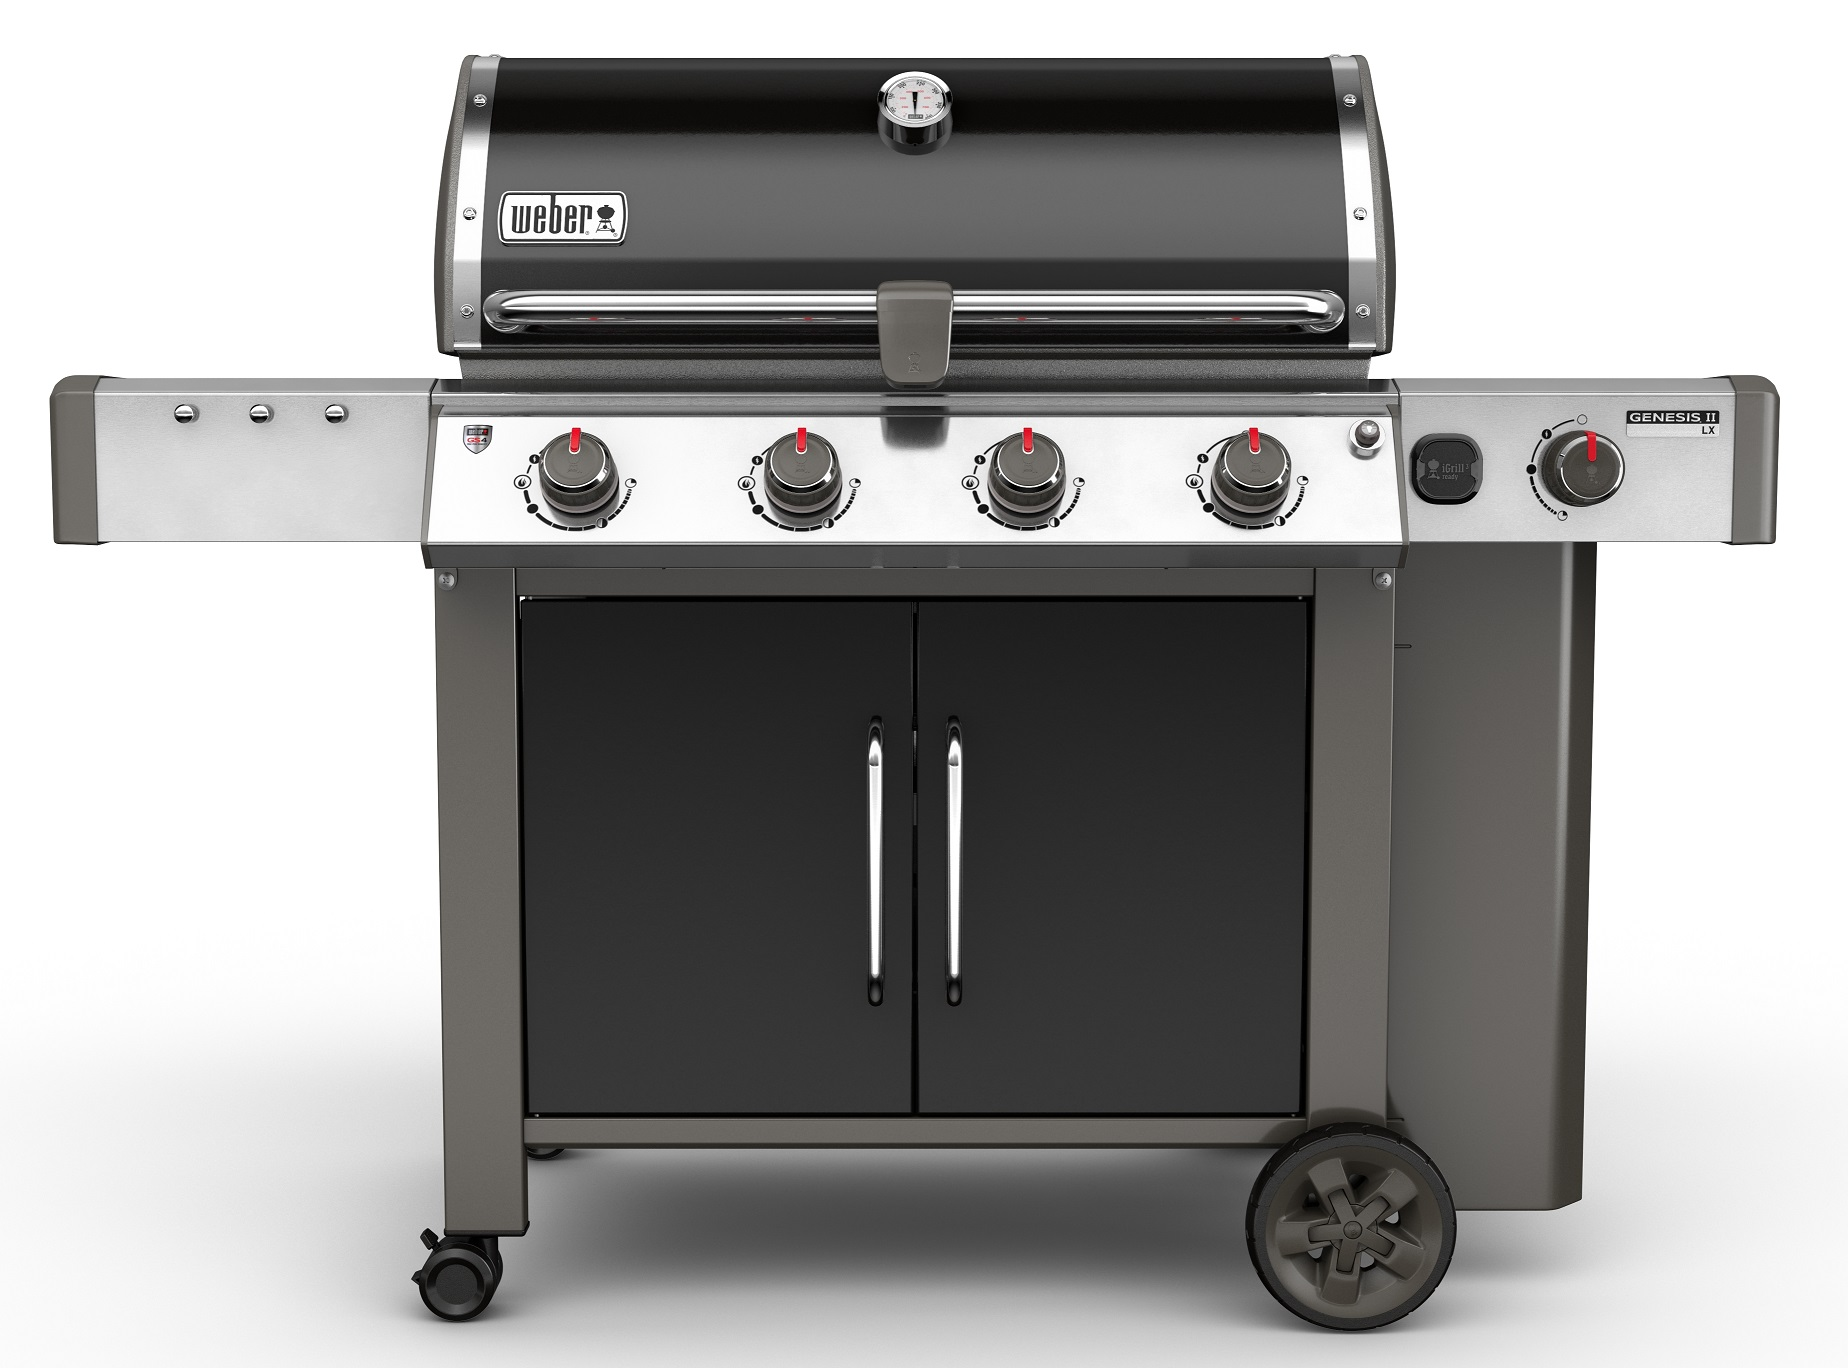 weber genesis ii lx e 440 gbs gas grill black exklusiv weber weber grills. Black Bedroom Furniture Sets. Home Design Ideas